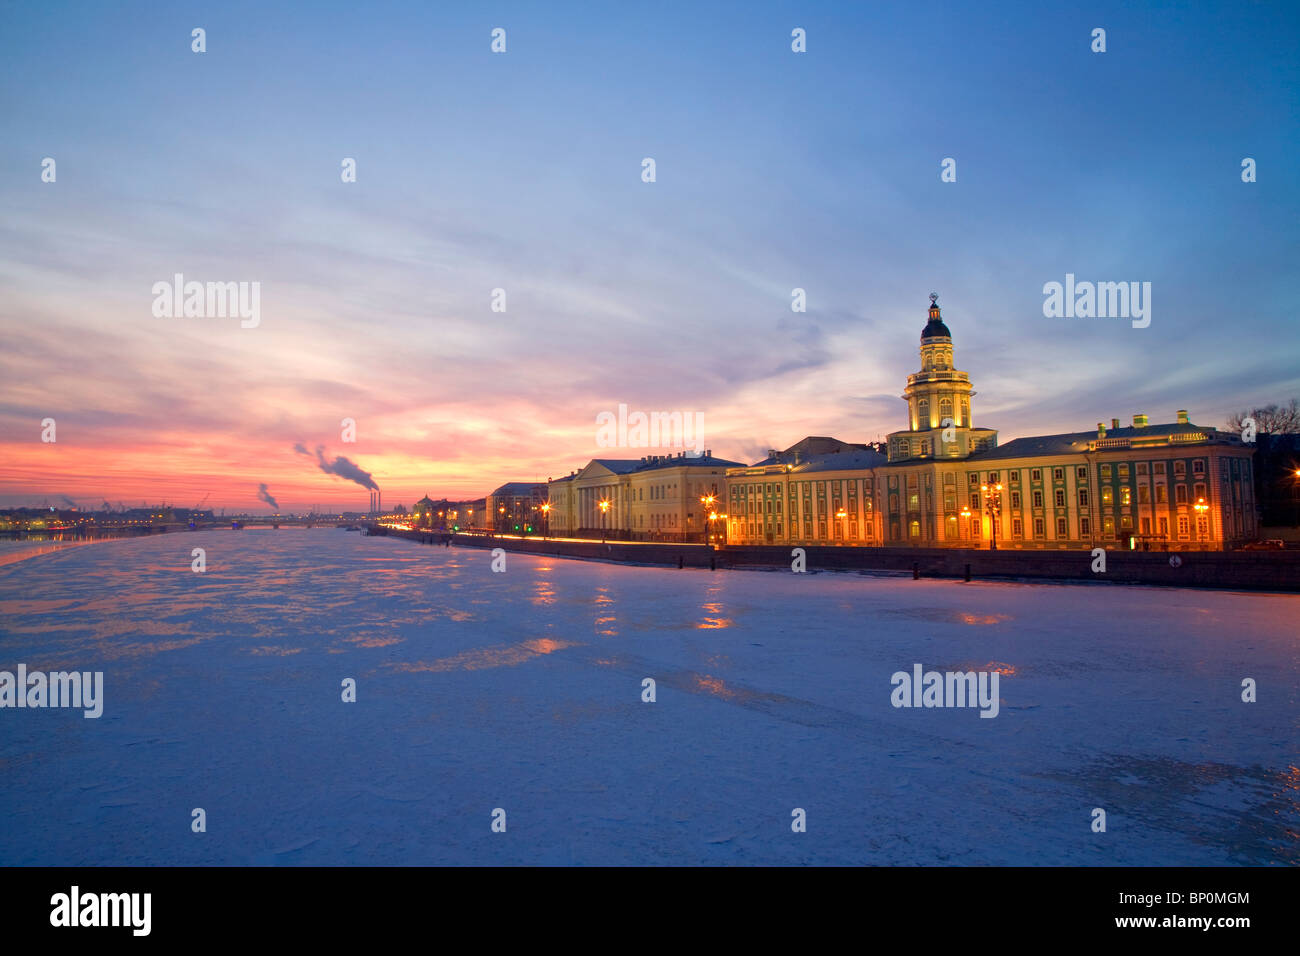 Russia, St. Petersburg; The last light over the partly frozen Neva River with the 'Kunstkamera' prominent in the - Stock Image